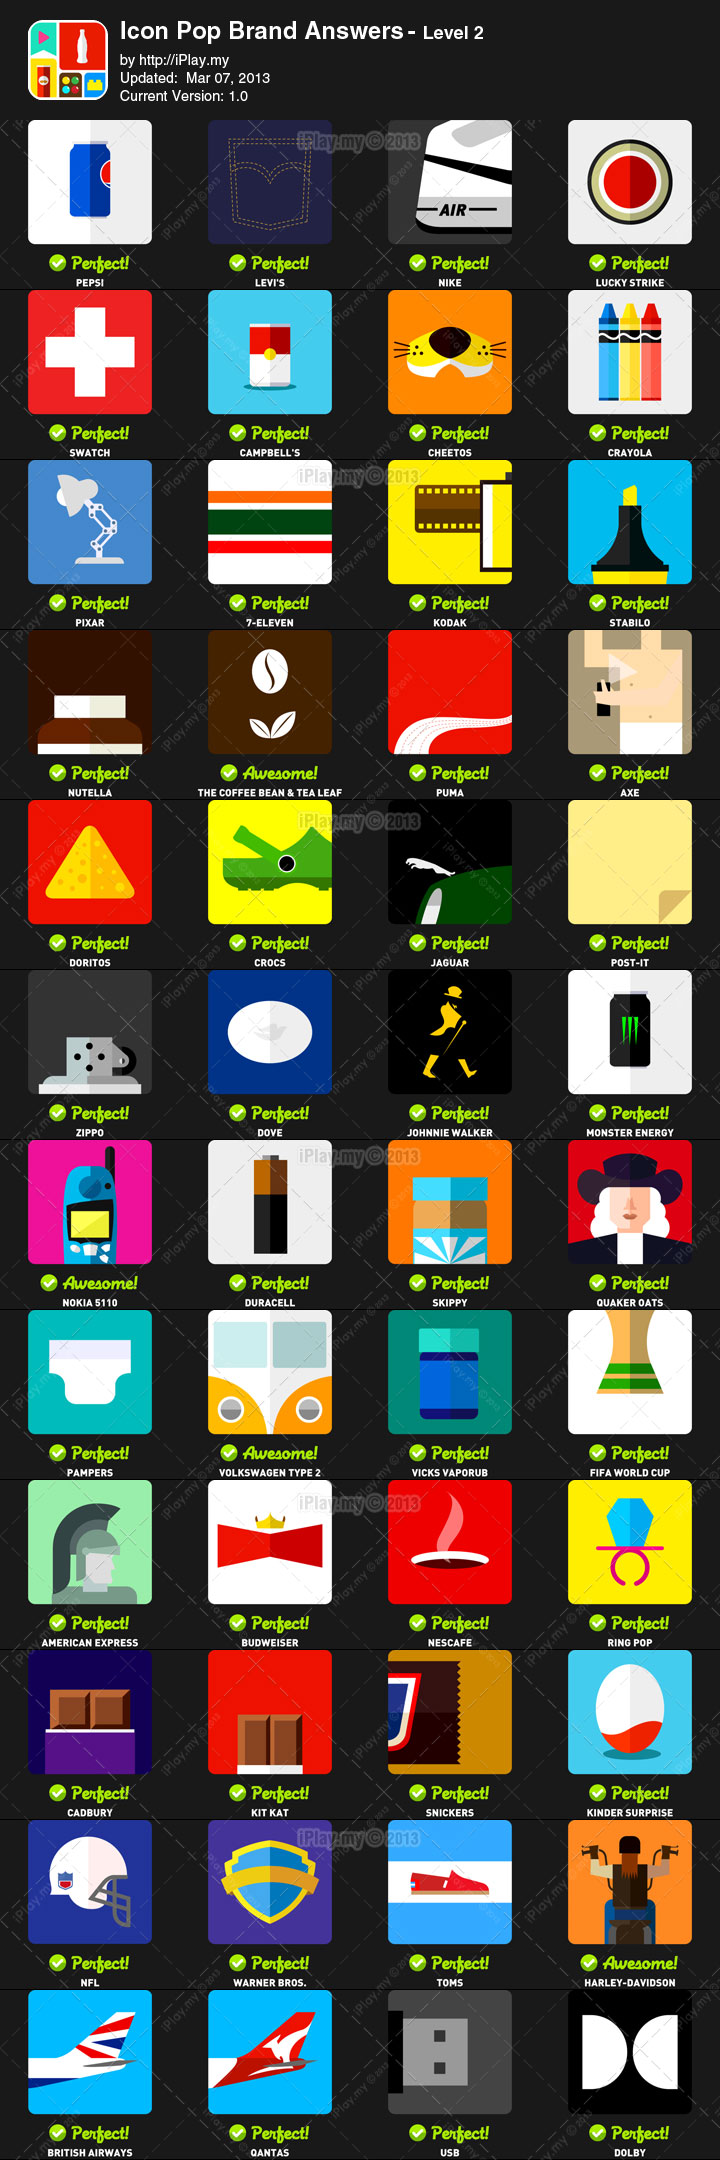 Icon Pop Brand Answers with Pictures Level 2